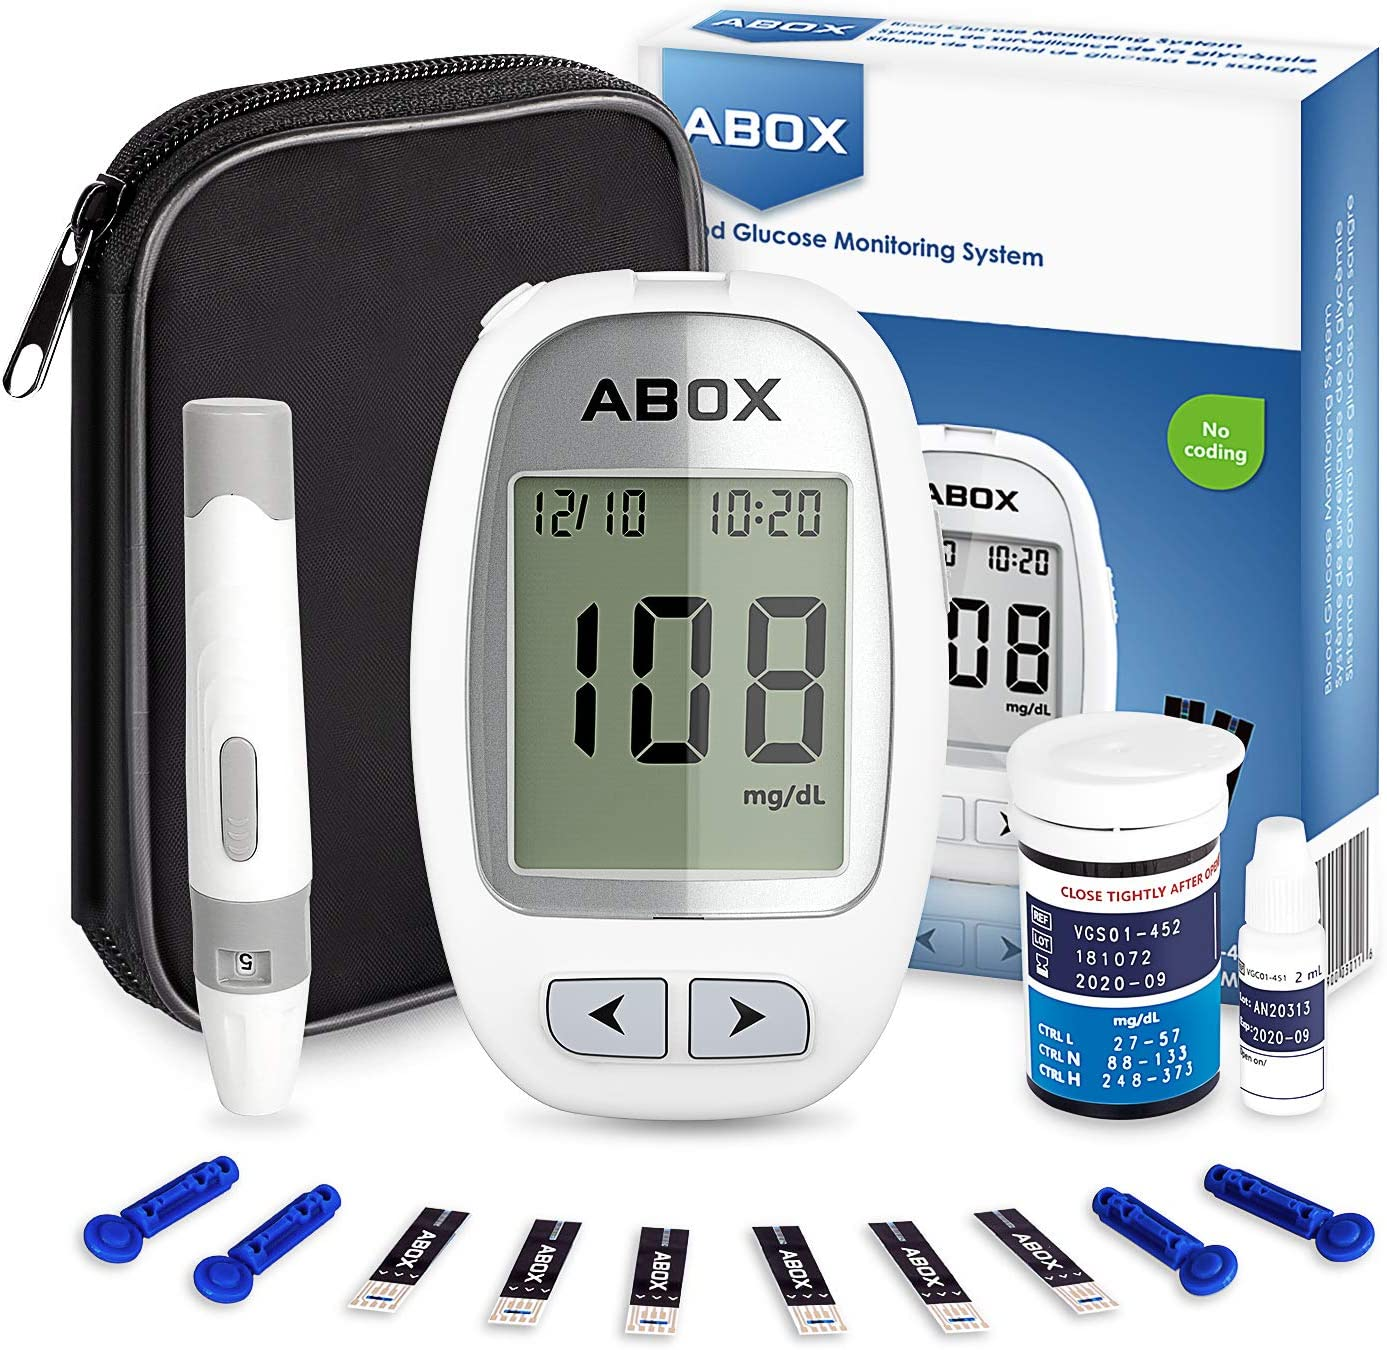 Blood Glucose Monitor, ABOX Diabetes Testing Kit Glucose Meter Kit with 25 Test Strips, 25 Lancets, Lancing Device, Control Solution and Carrying Bag for Blood Sugar Level Monitoring